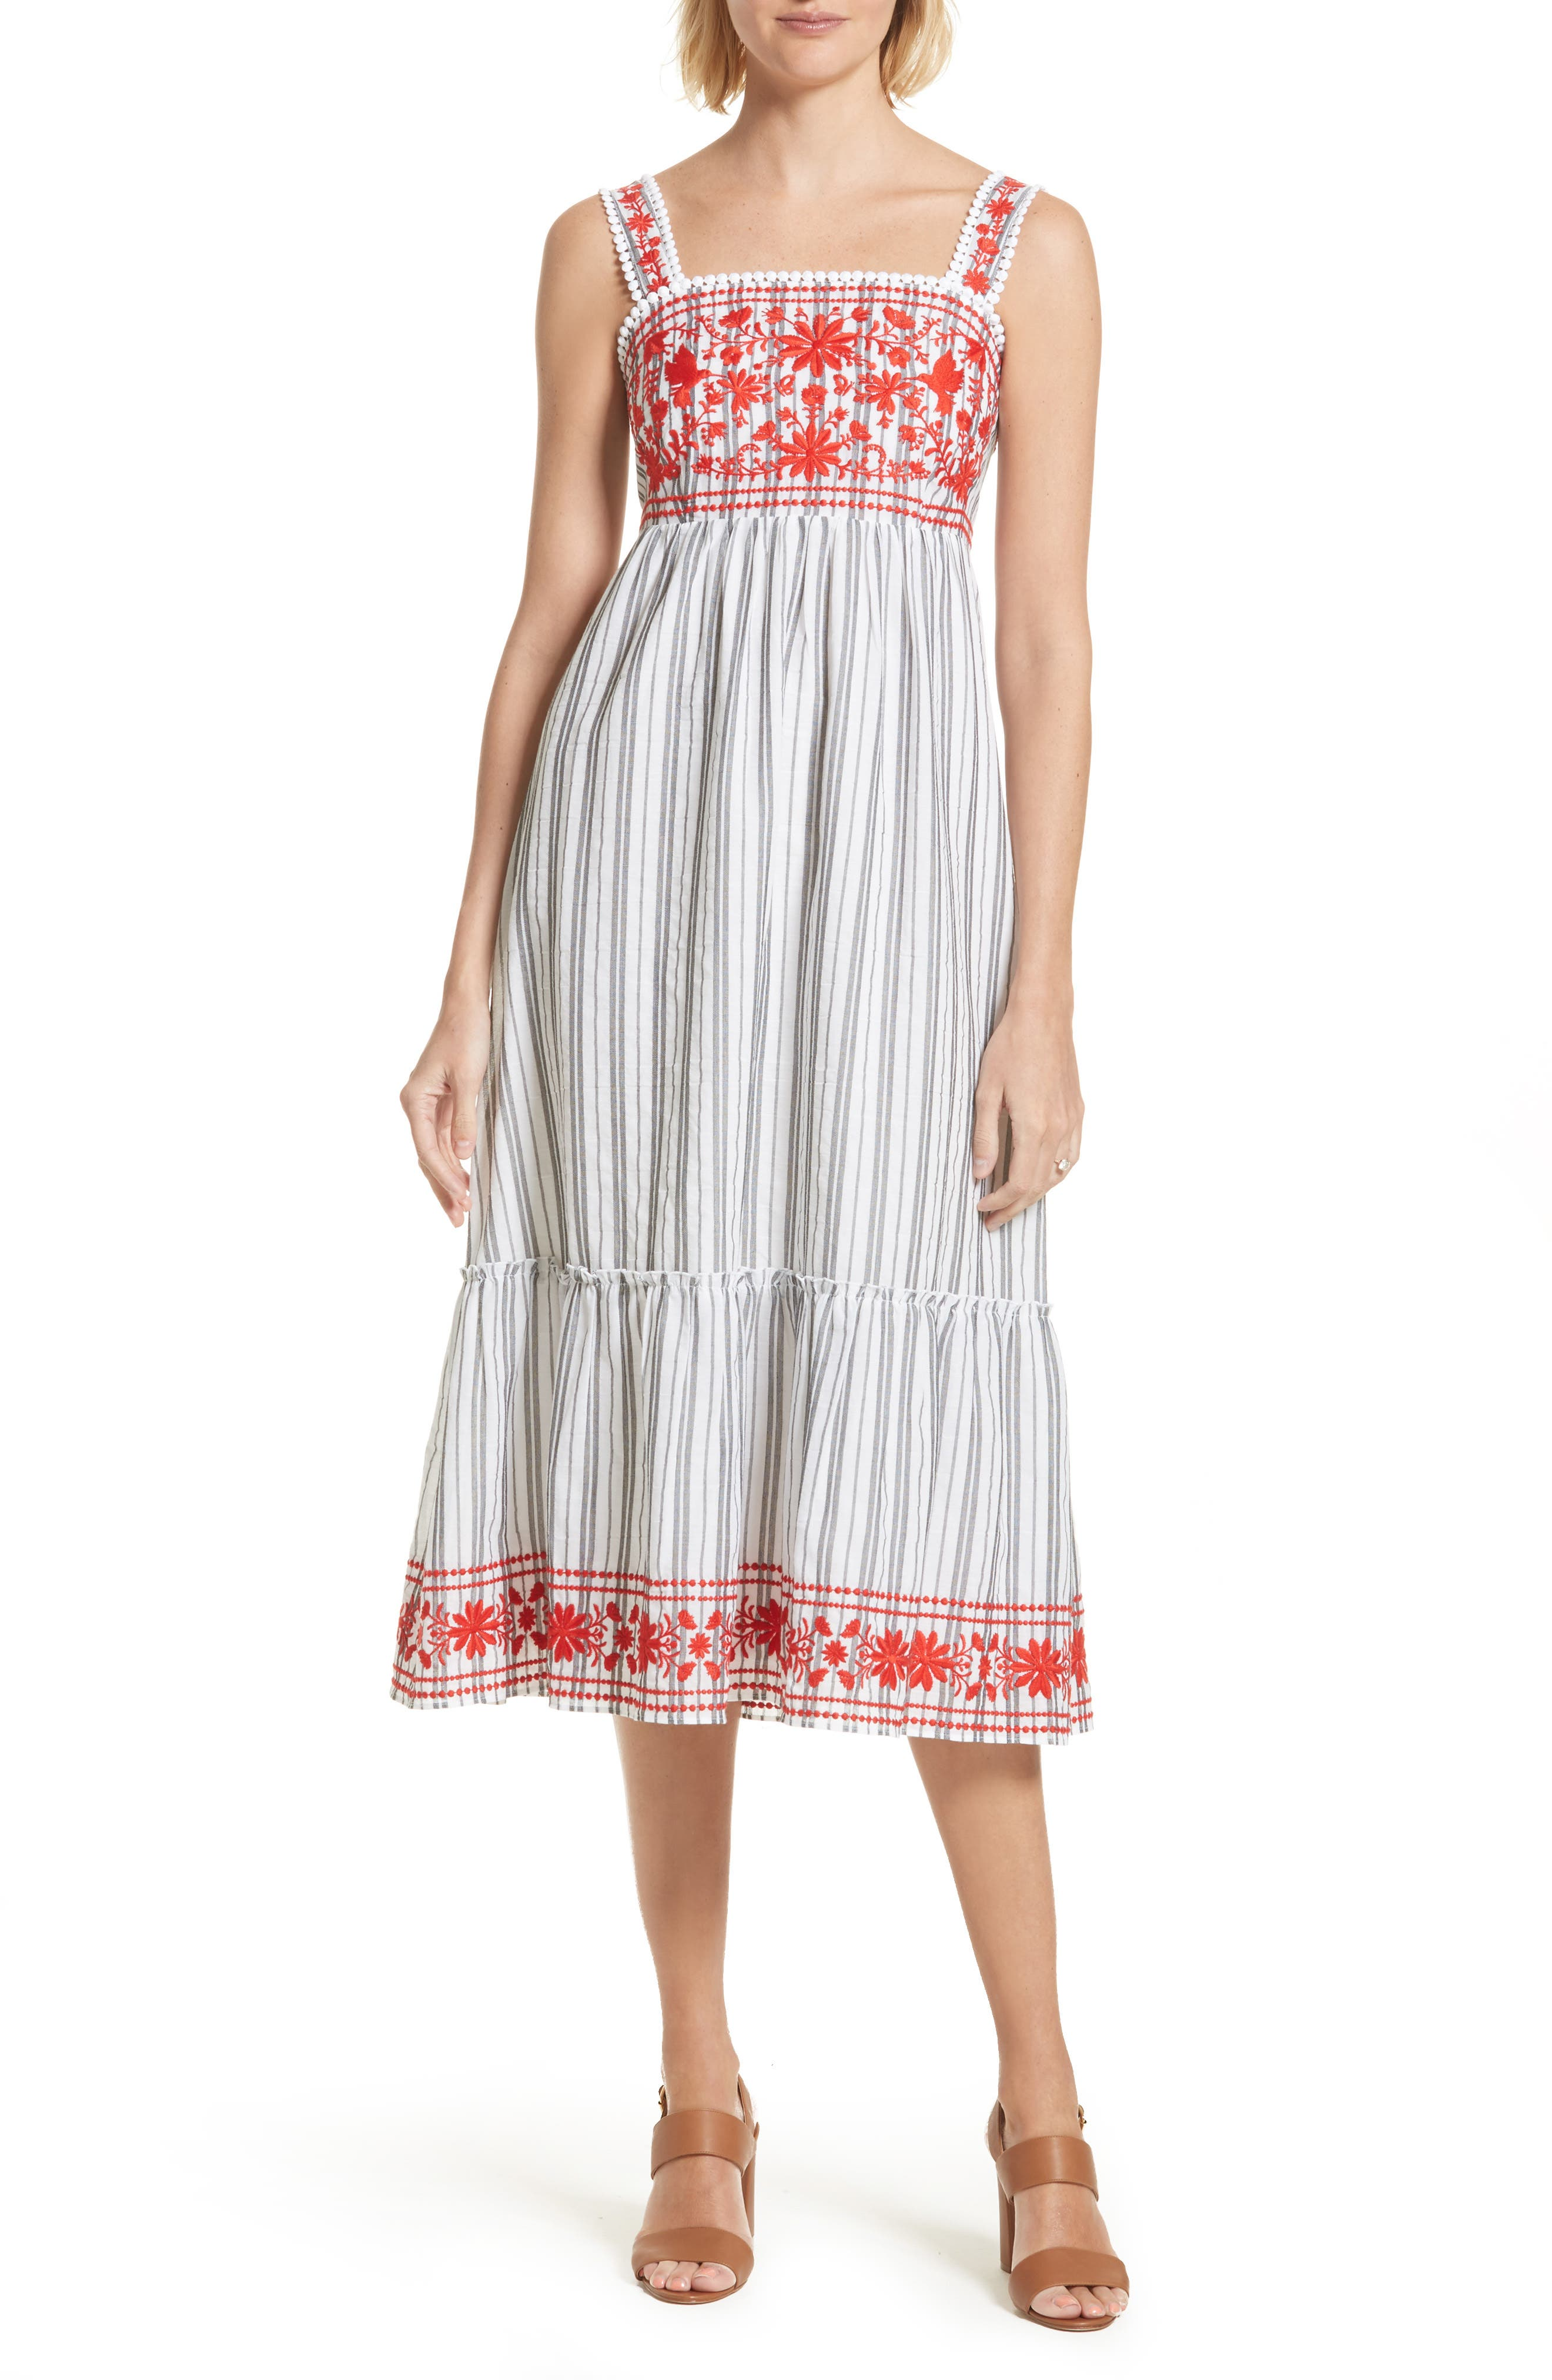 embroidered sundress,                             Main thumbnail 1, color,                             146